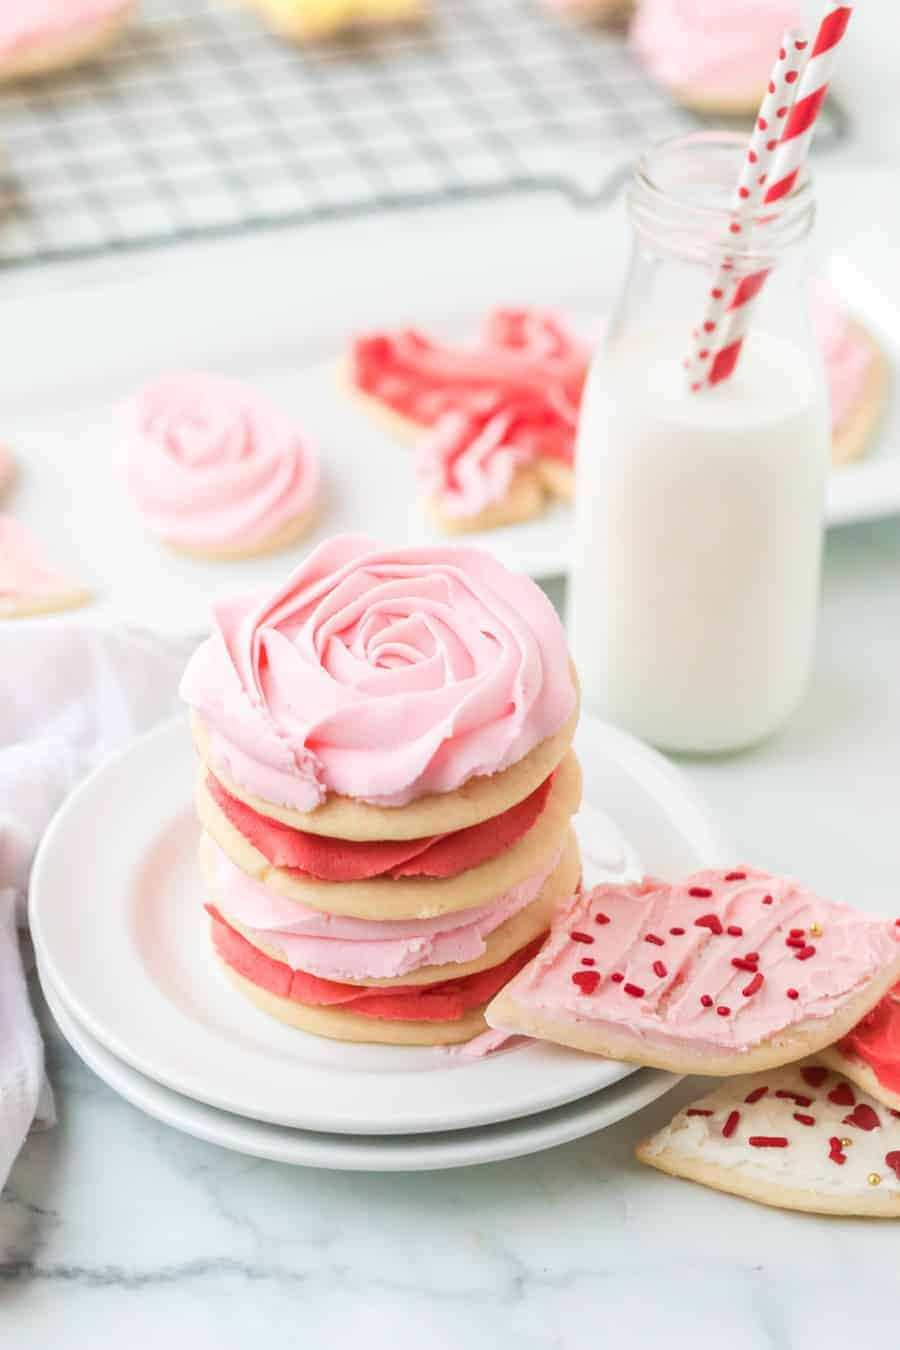 stack of pink and red iced sugar cookie cutouts on white plate with small glass jug of milk with red and white paper straws